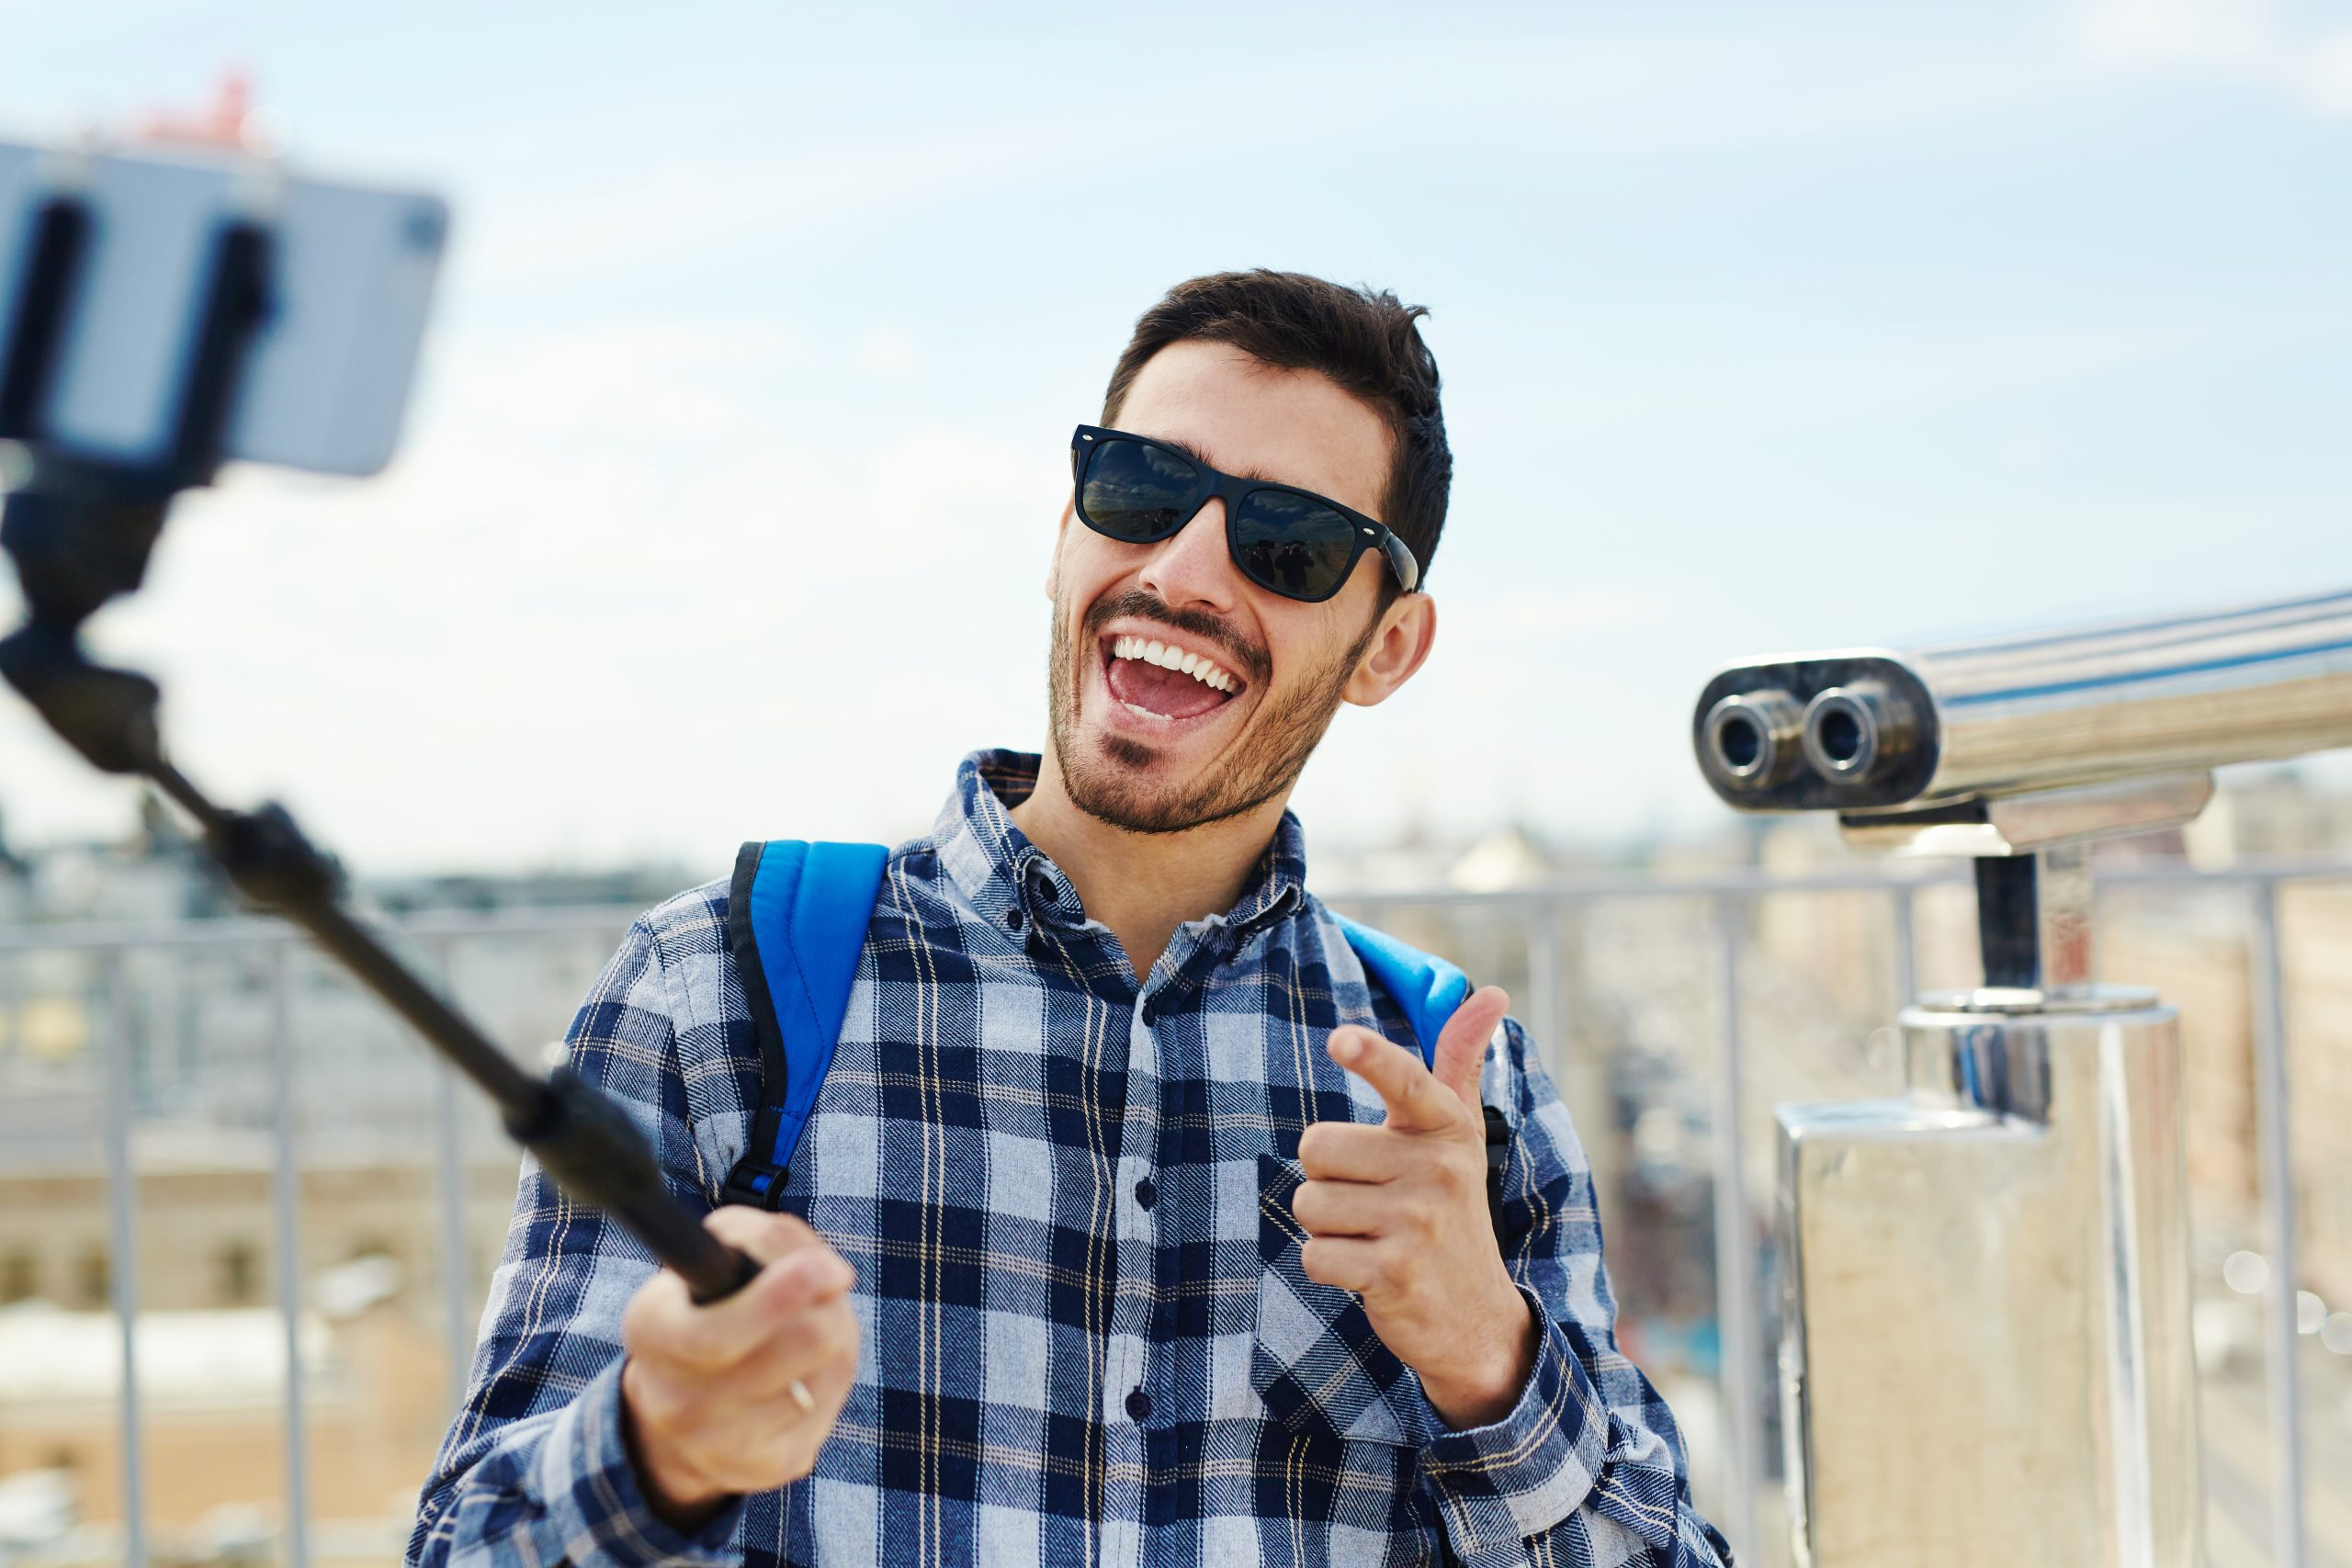 India is the world capital for selfie deaths